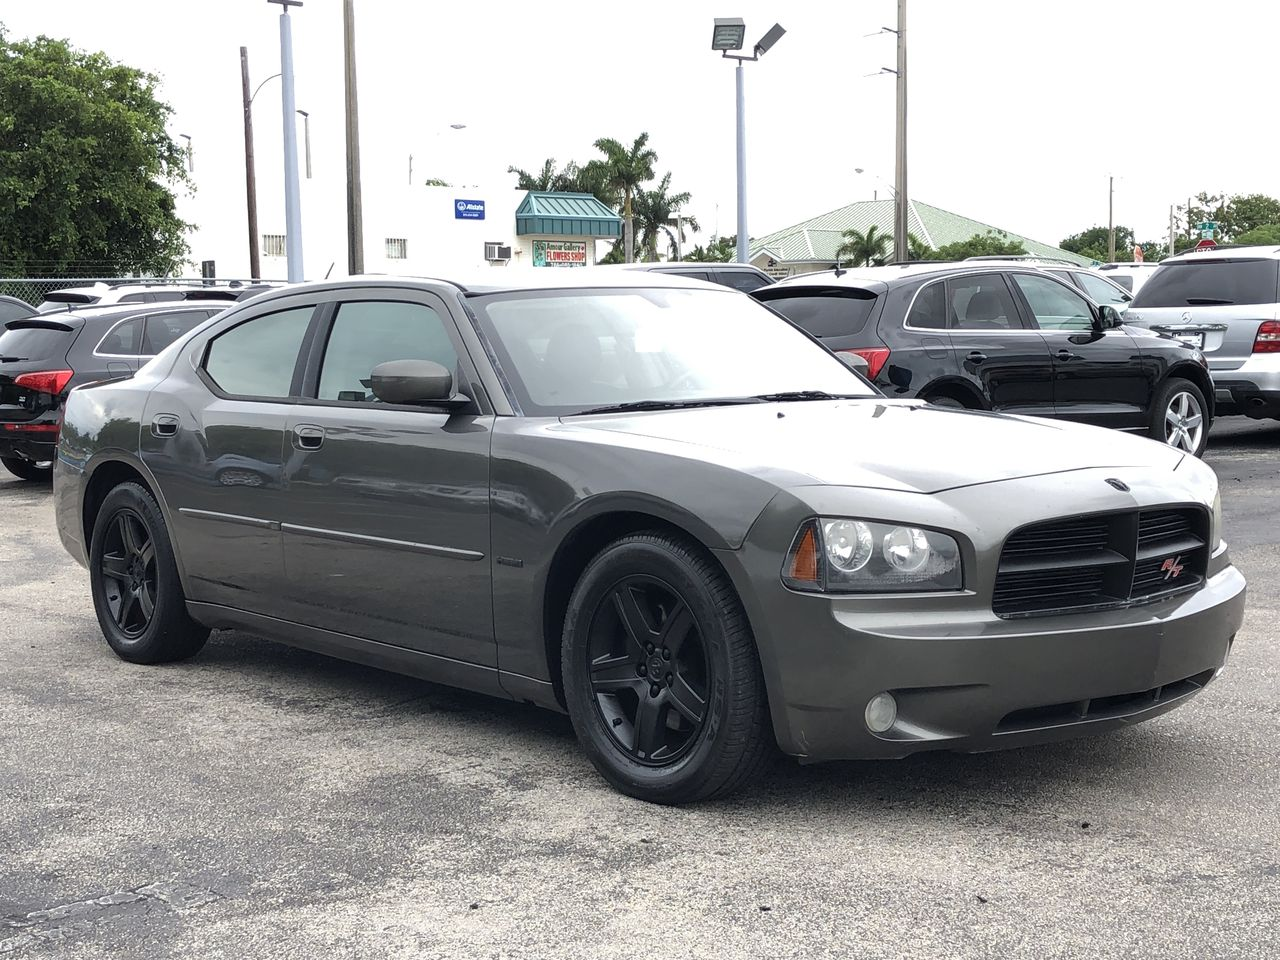 2008 Dodge Charger R T Sold Premier Auction Broker And Pre Owned Auto Sales